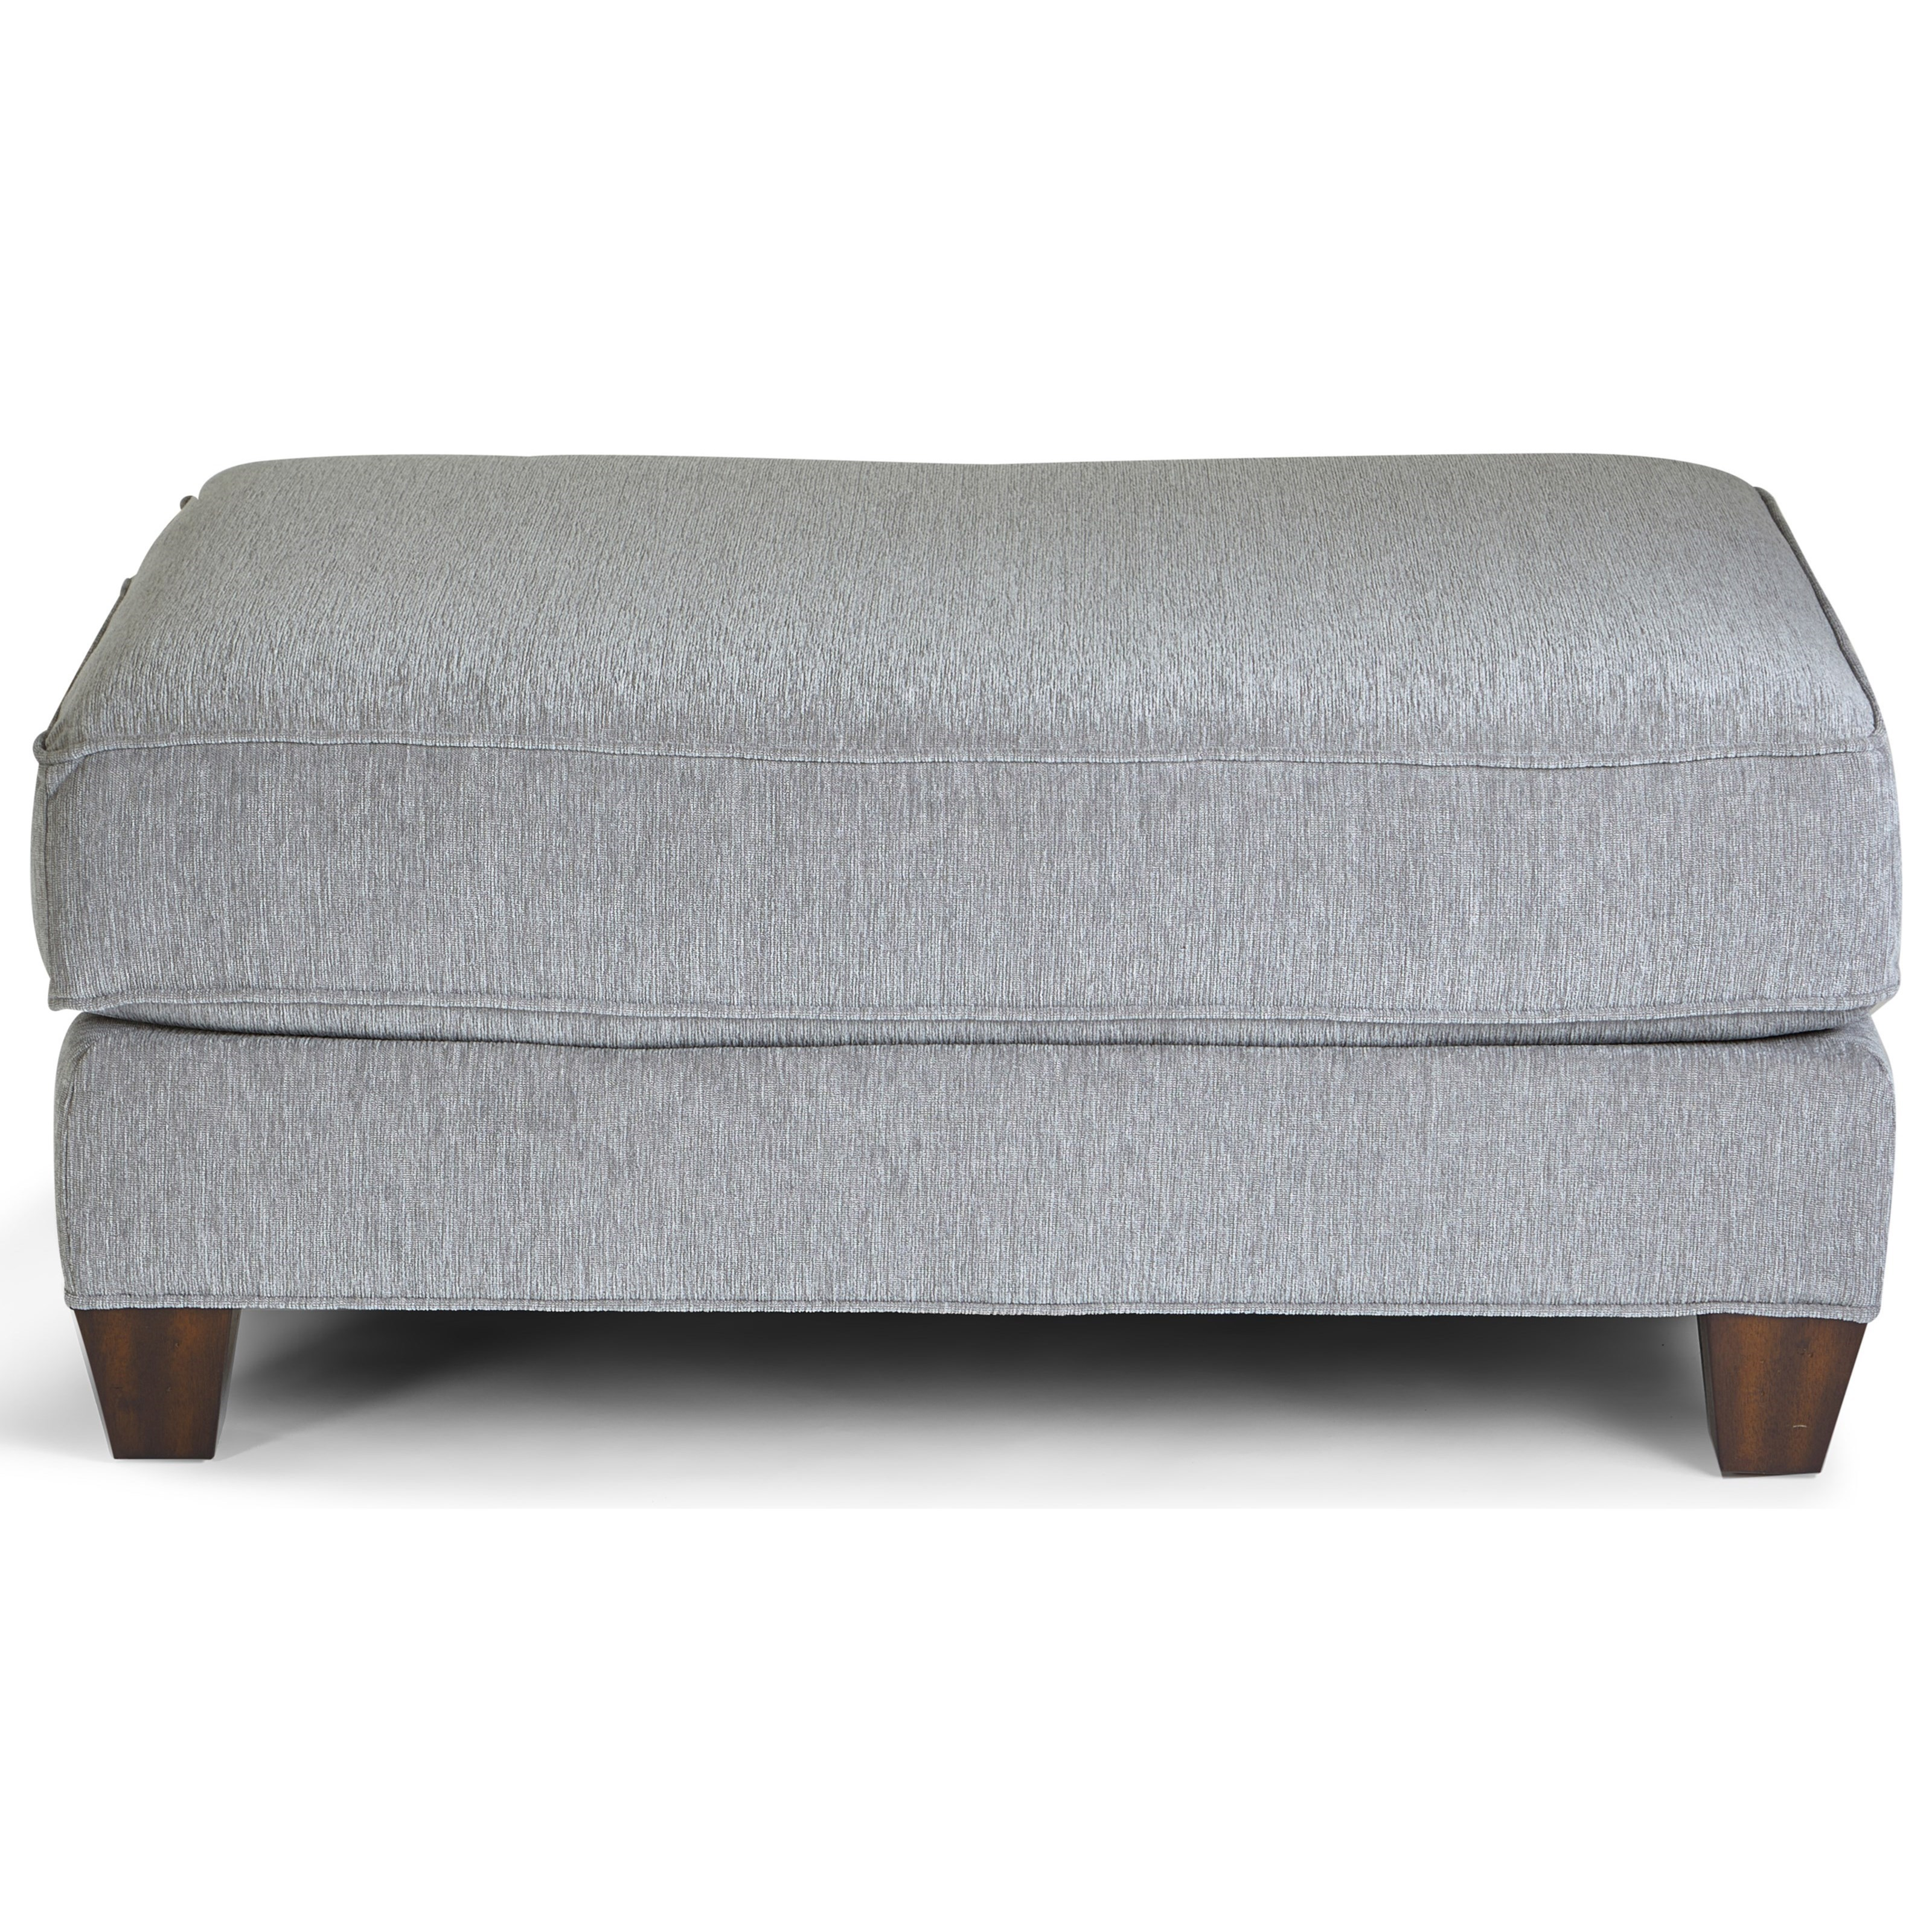 Bennett Ottoman by Flexsteel at Jordan's Home Furnishings